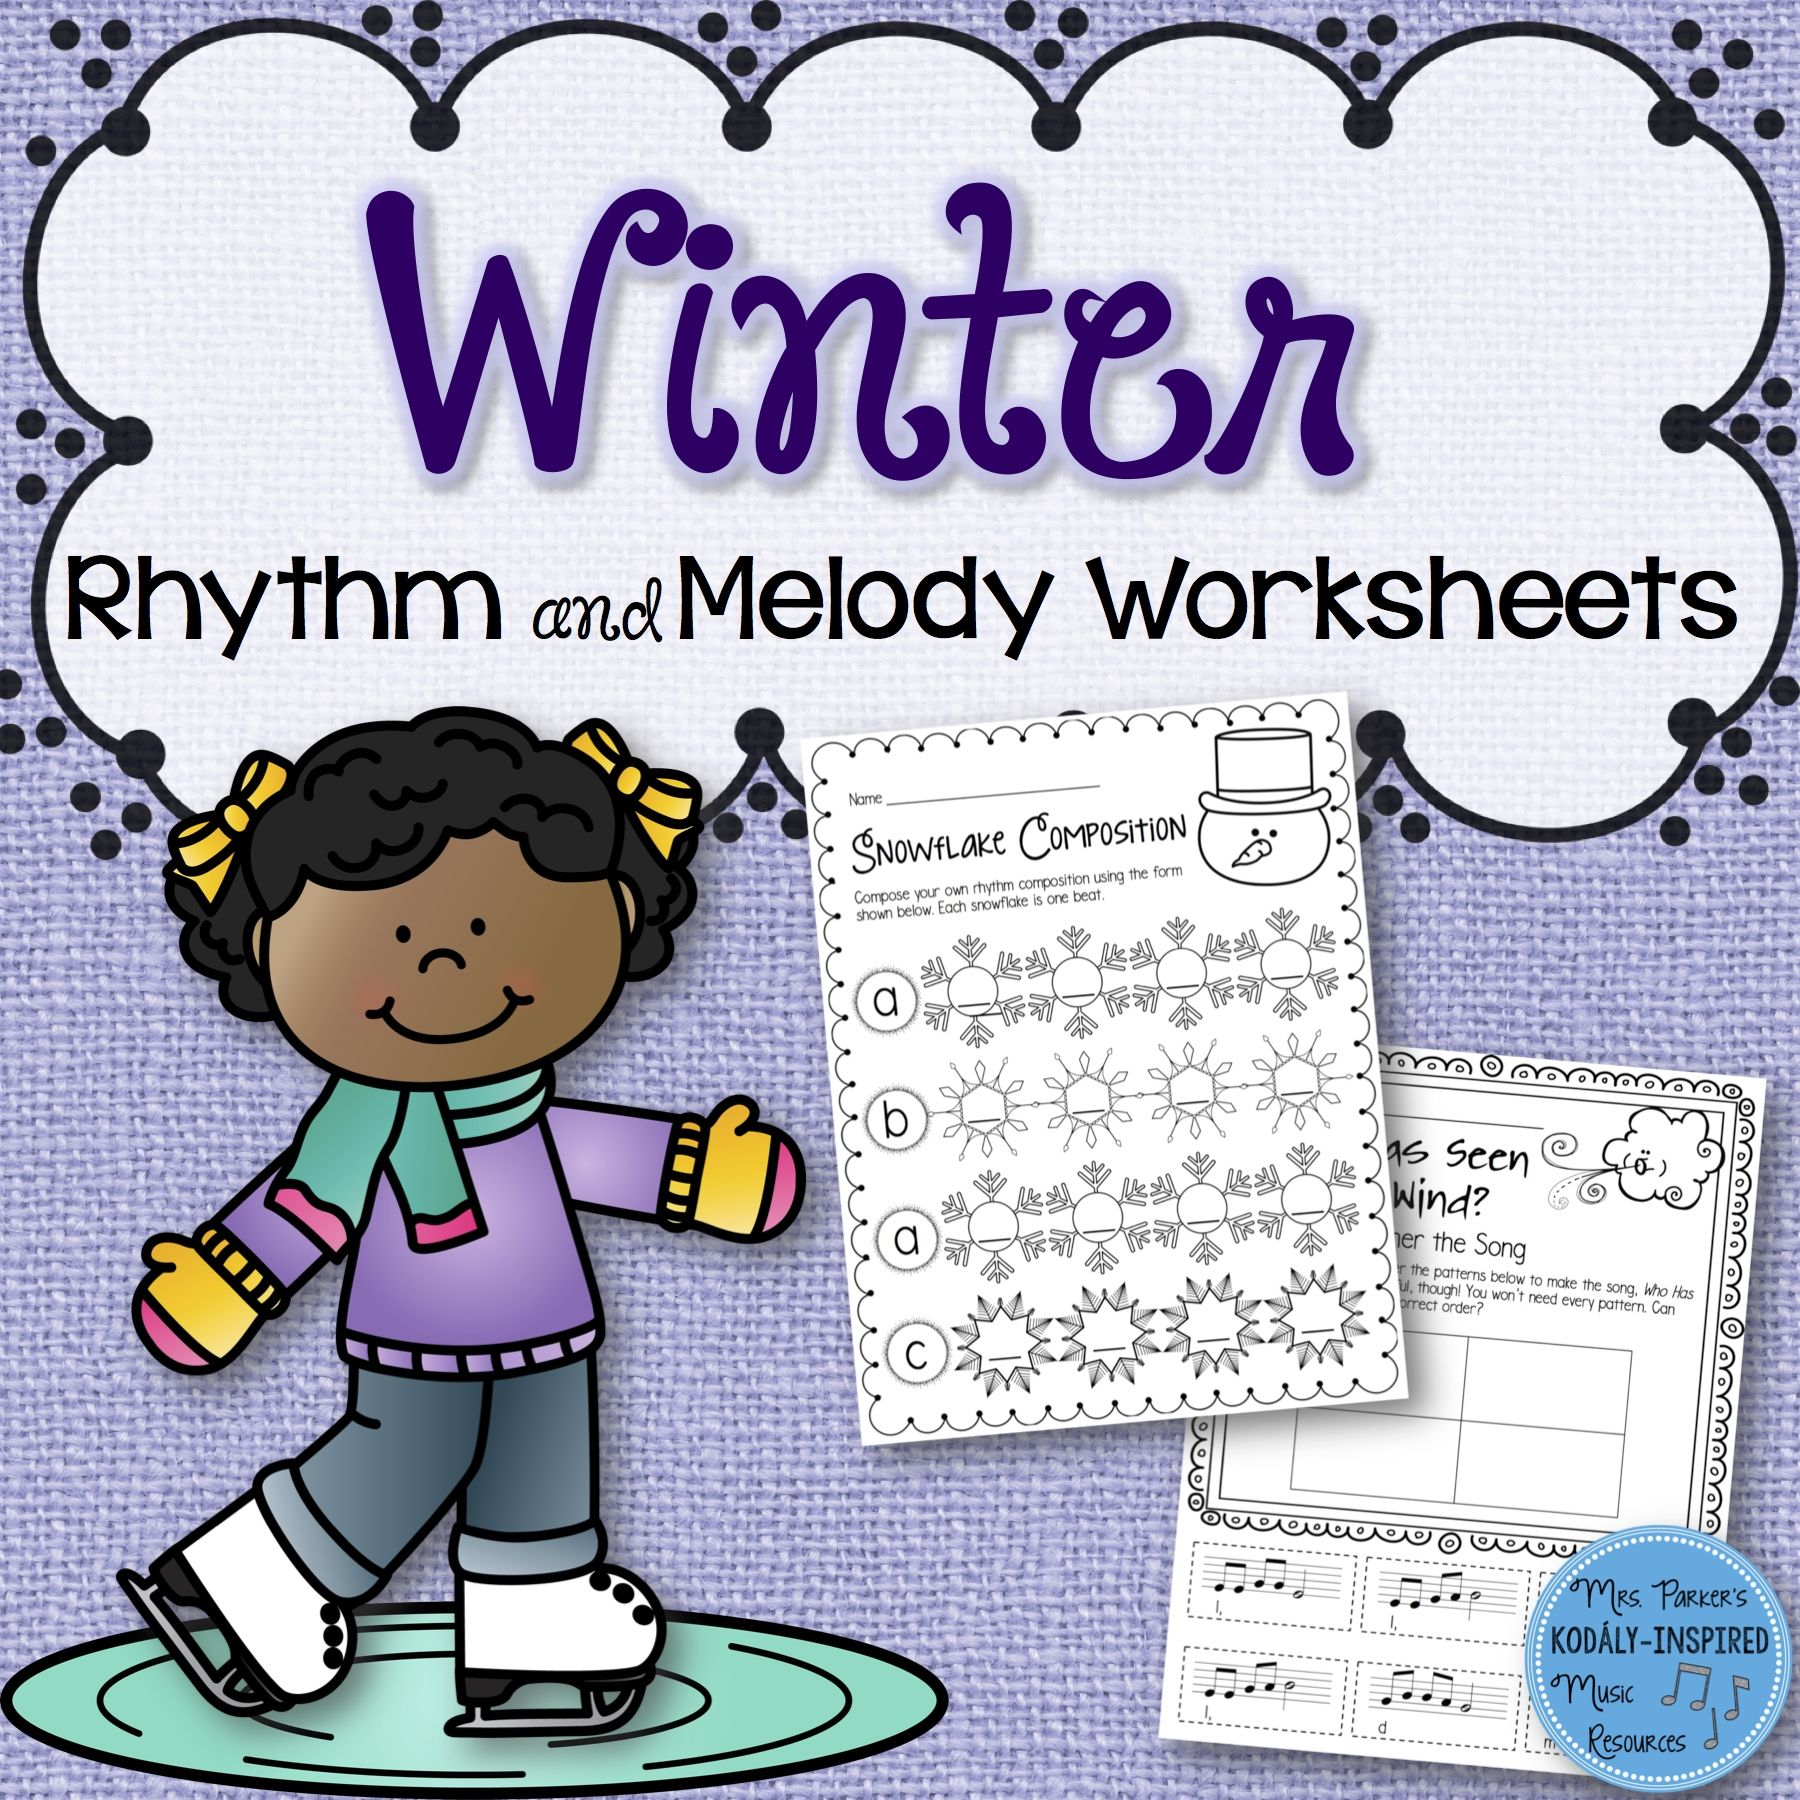 60 Rhythm And Melody Worksheets For The Wintertime Super